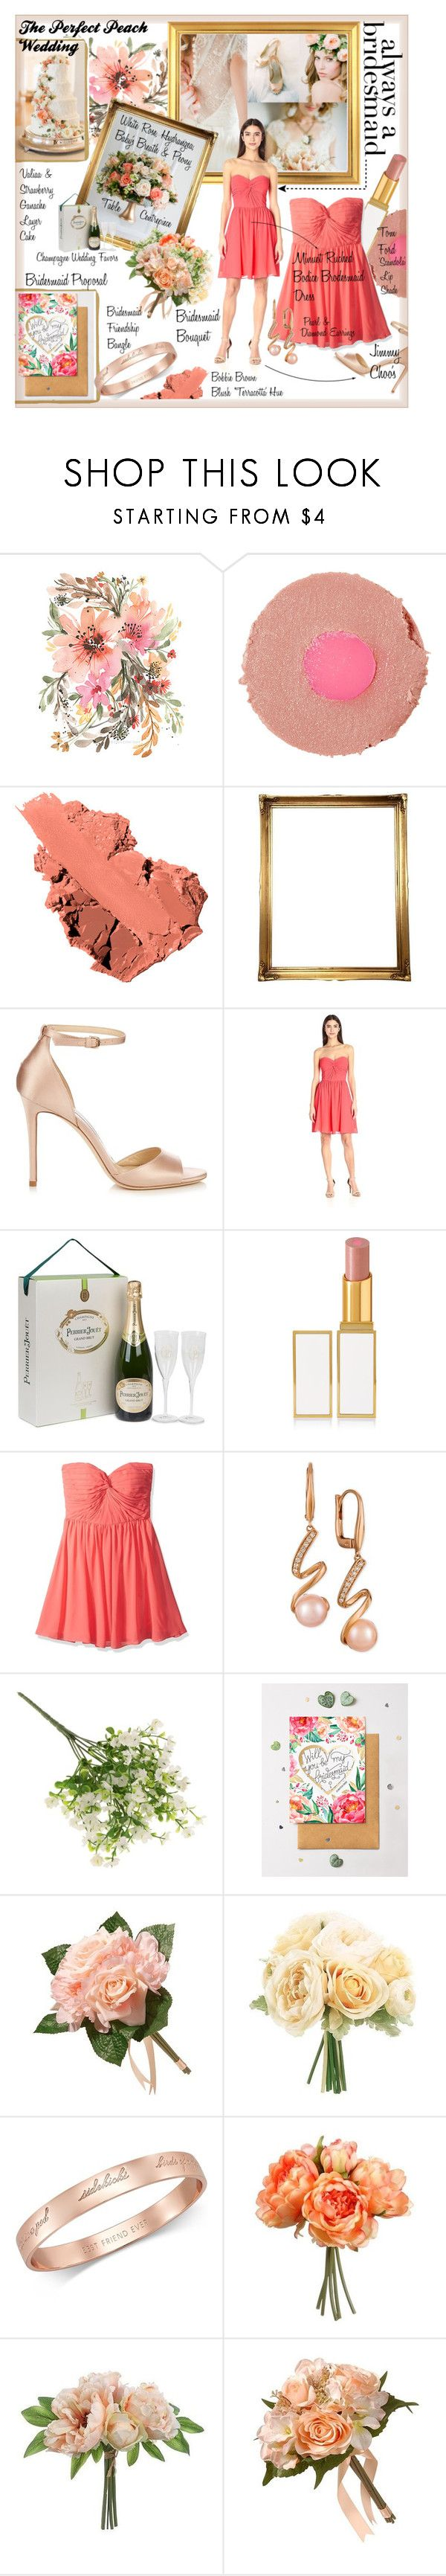 """""""Always the Bridesmaid."""" by style-queen-kc-nigz ❤ liked on Polyvore featuring Ellen Crimi-Trent, Tom Ford, Bobbi Brown Cosmetics, Jimmy Choo, Minuet, LE VIAN, National Tree Company and Kate Spade"""